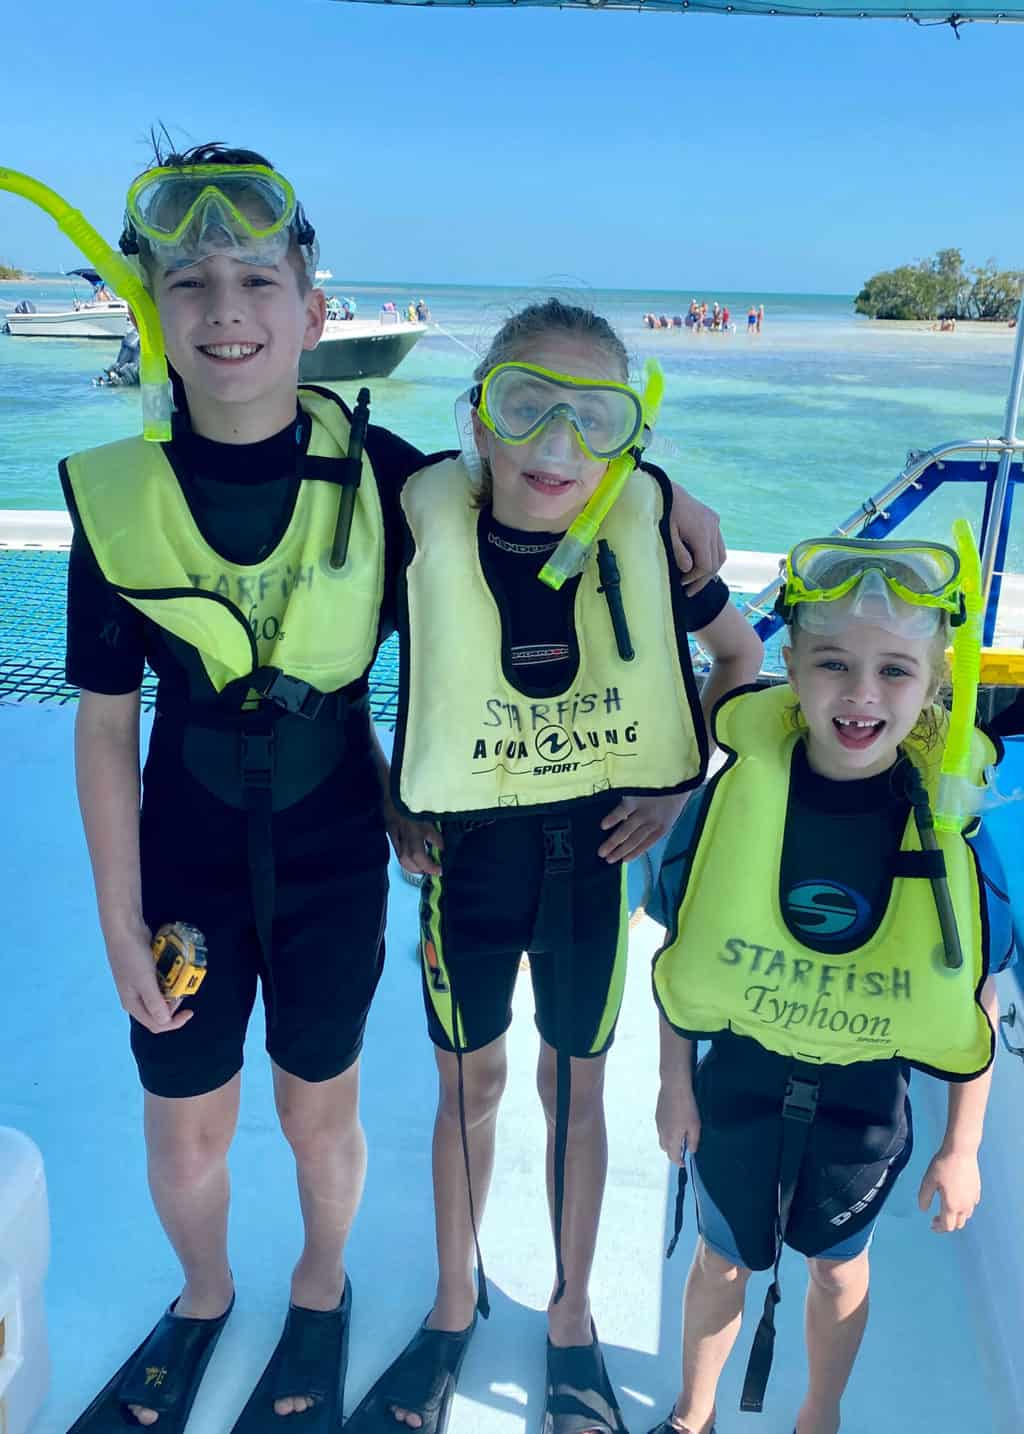 Our Key West Trip Part 4: Snorkeling + Enjoying Hawks Cay!